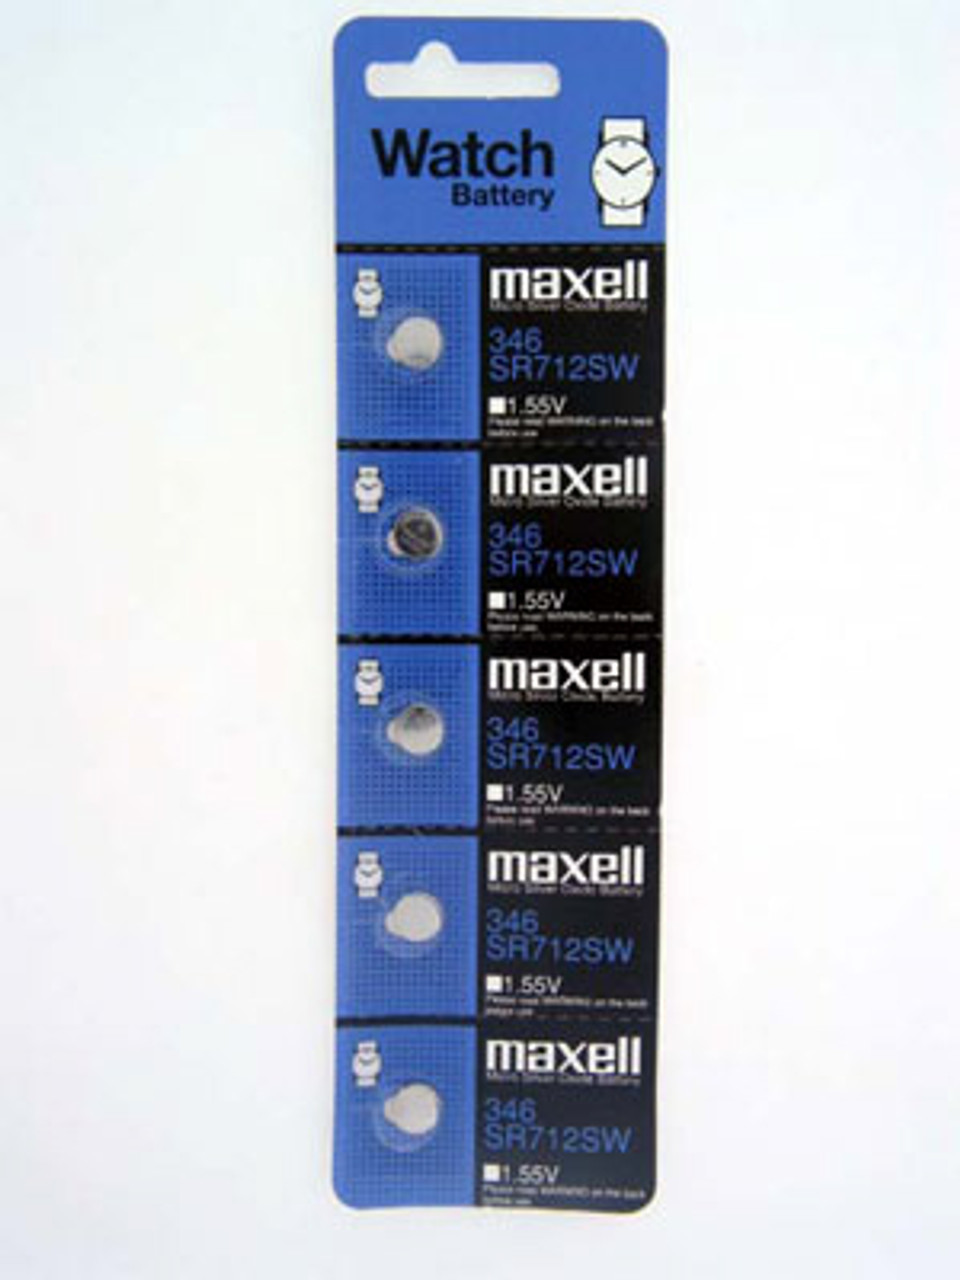 Maxell 346 Watch Battery - Main